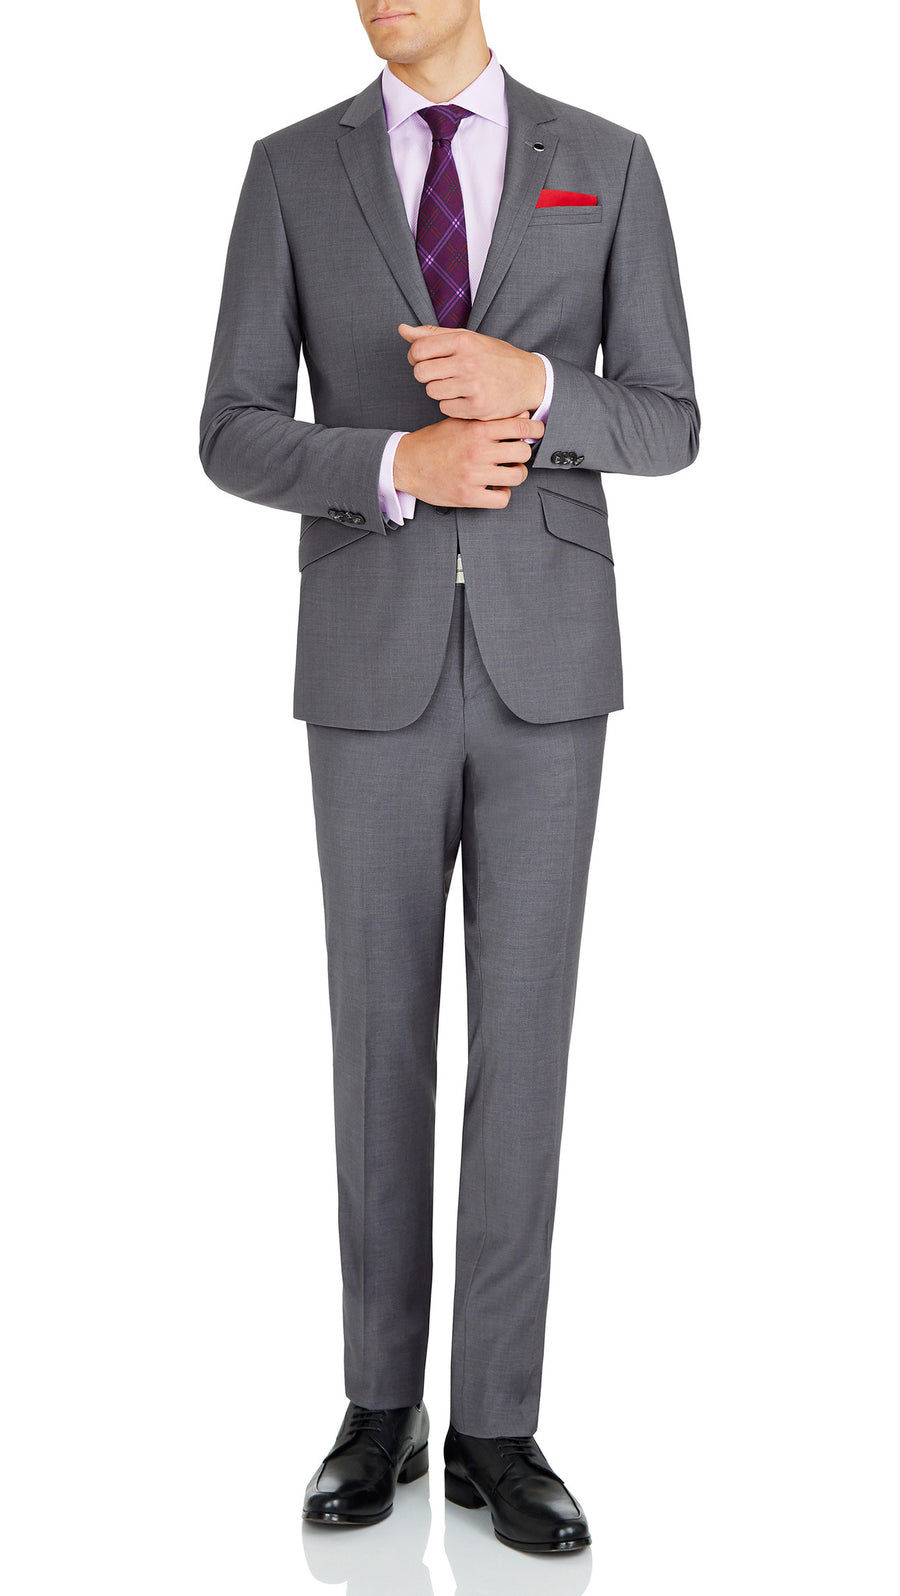 Blackjacket Skinny Fit Suit in Grey